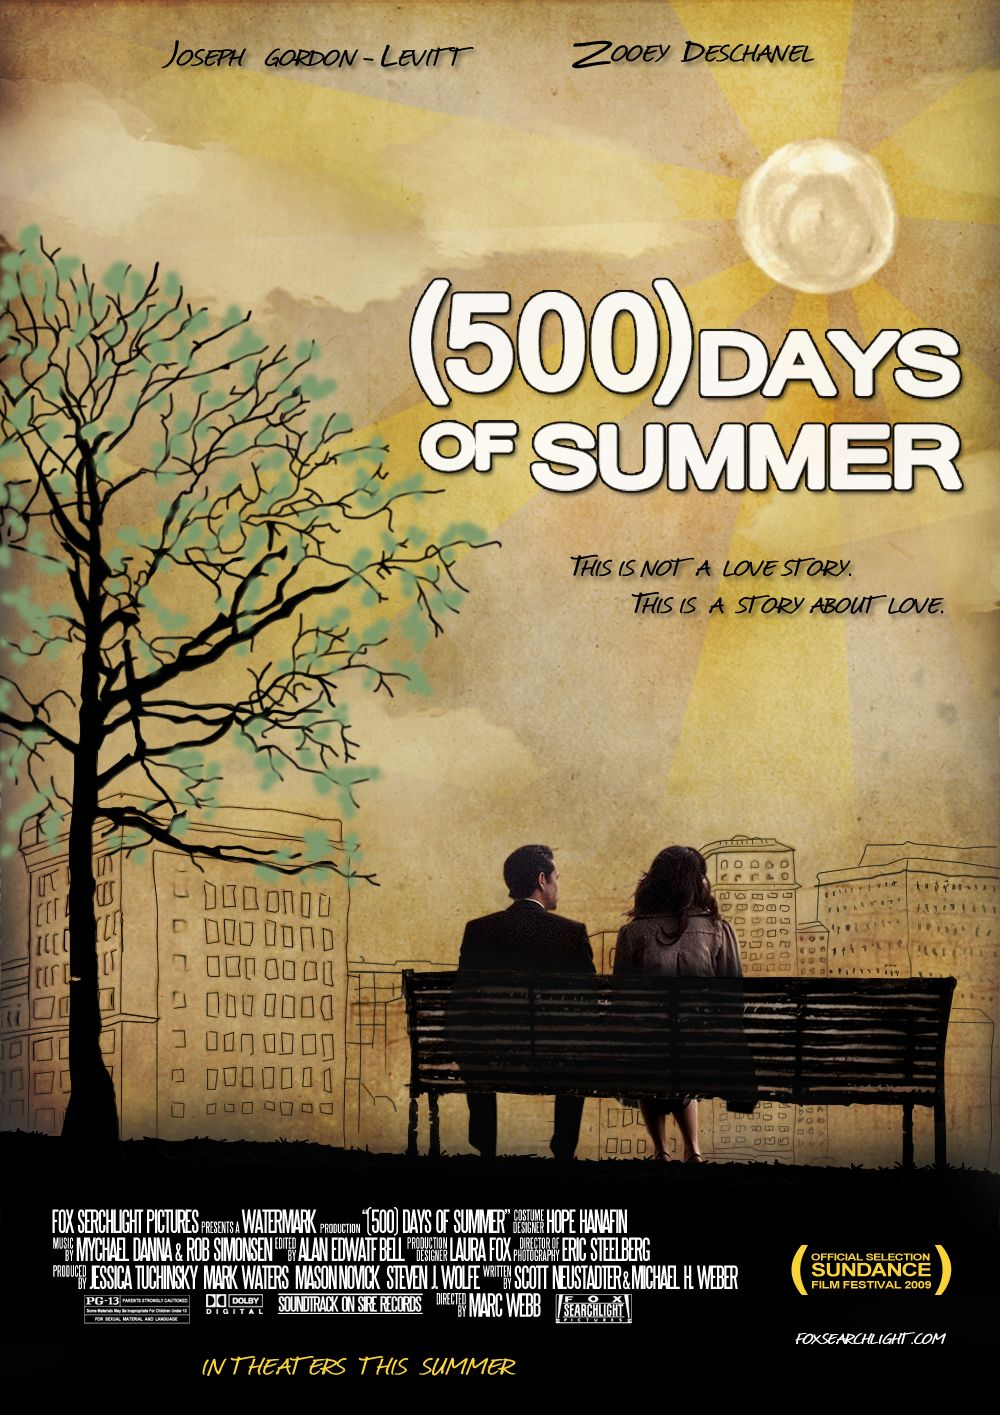 【影評】 戀夏(500日)  (500) days of summer